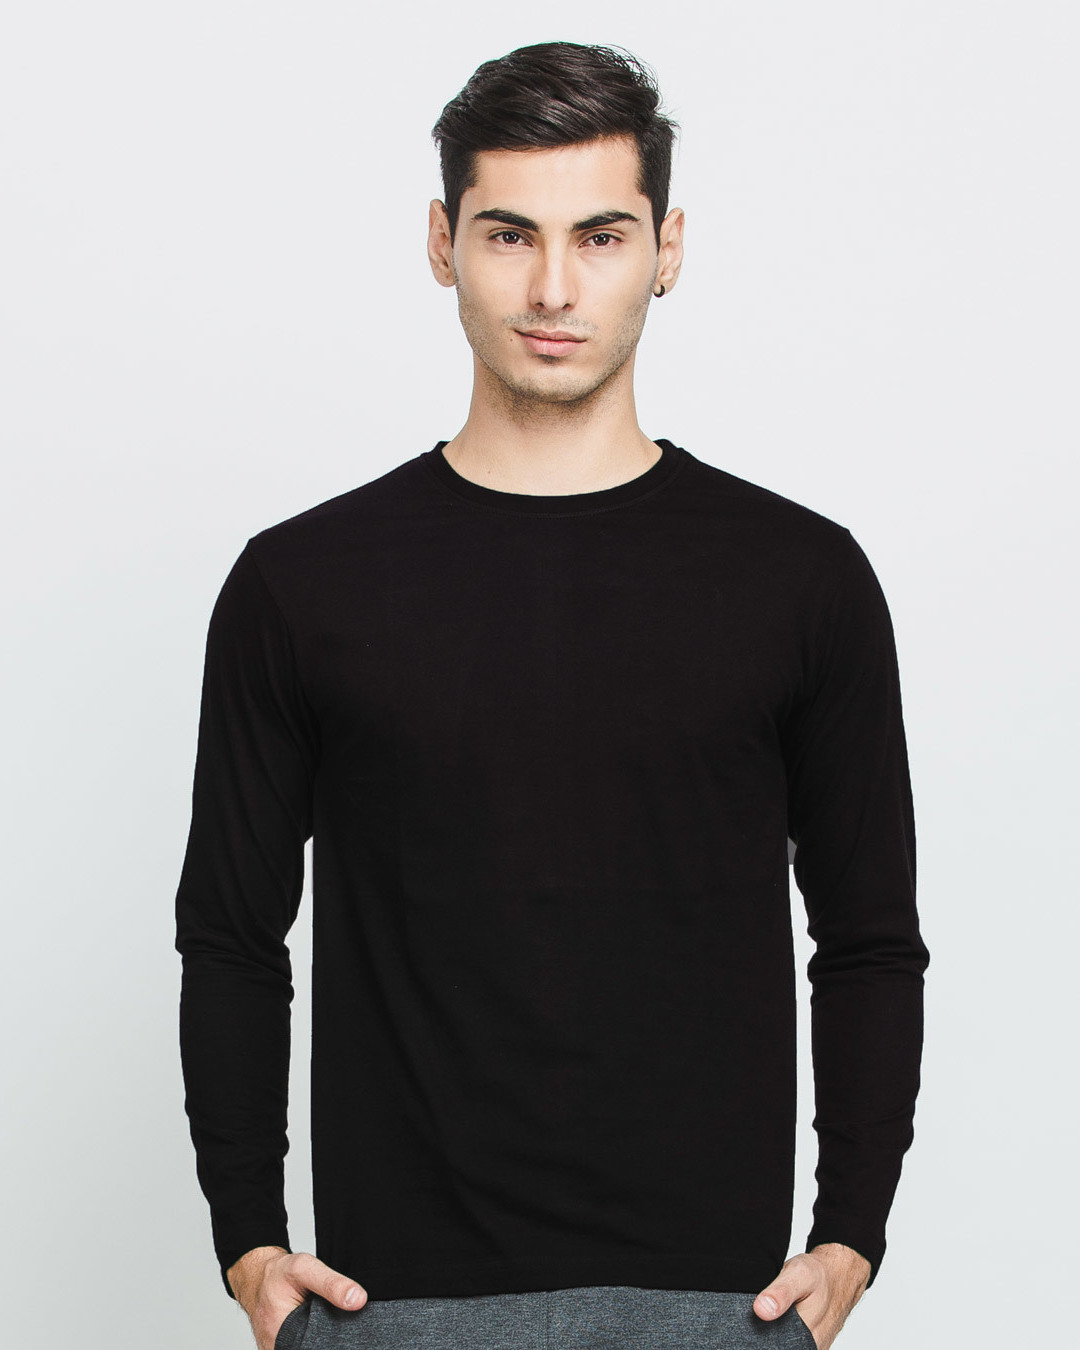 full black t shirt is shirt ForFull Black T Shirt